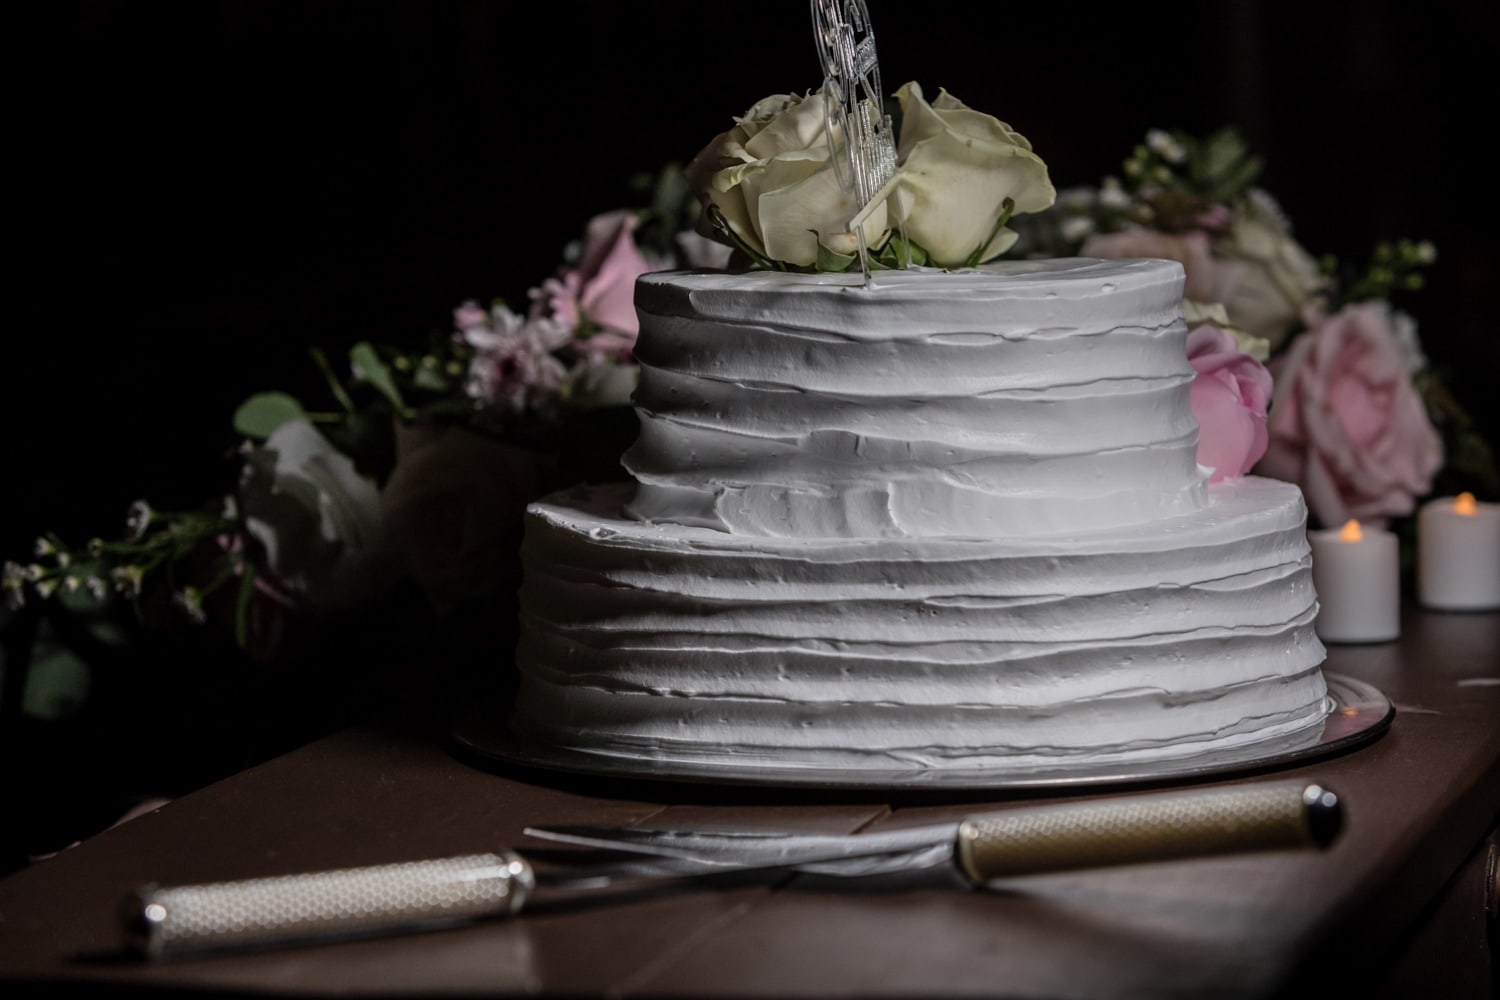 Wedding cake with ornate flowers with cutting utensils on wood table.